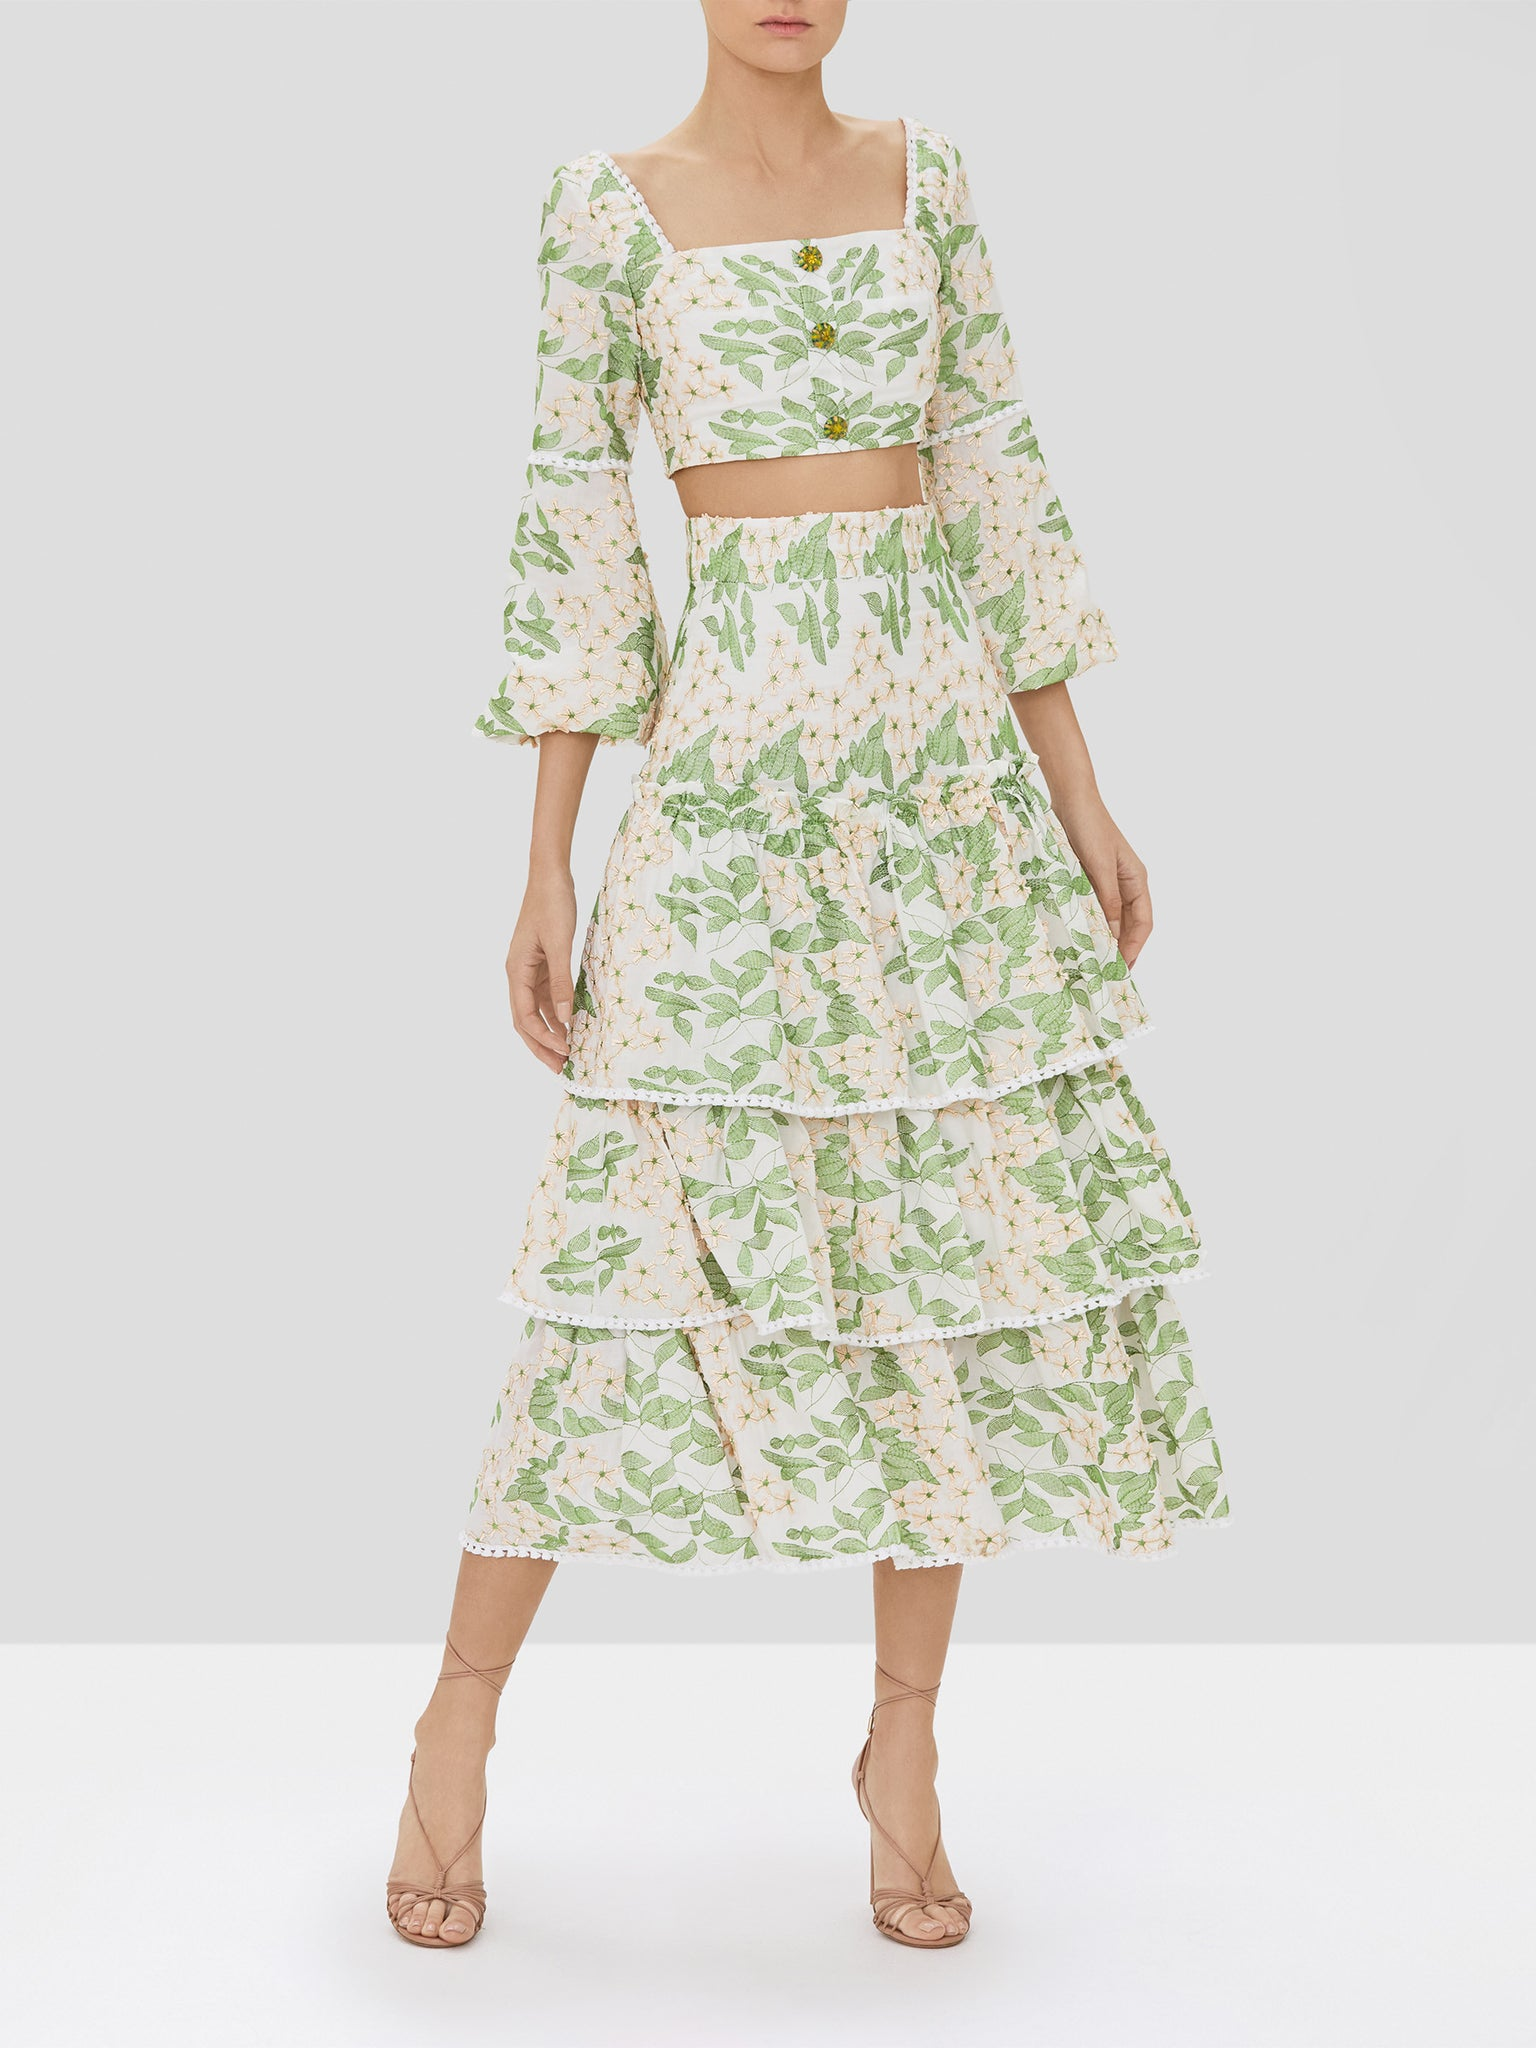 Alexis Ikala Top and Aditya Skirt in Green Embroidery from our Pre-Spring 2020 Ready To Wear Collection